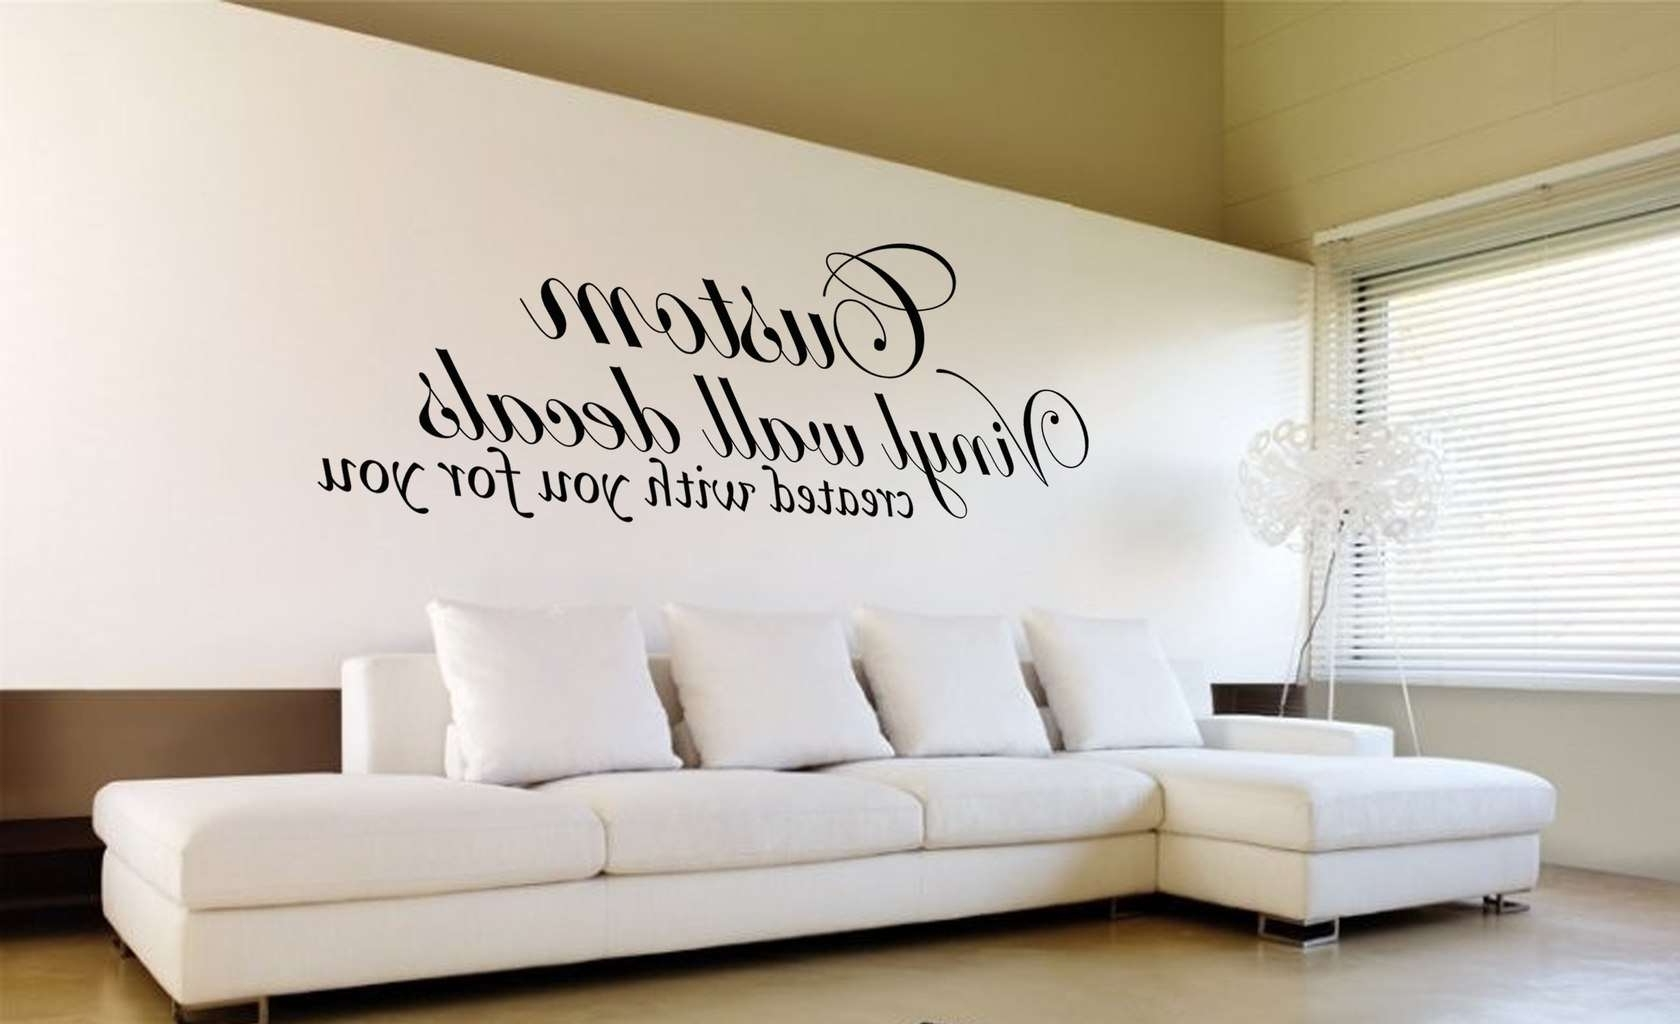 Custom Wall Art Decal Sticker With Regard To Recent Wall Art Decals (View 7 of 15)